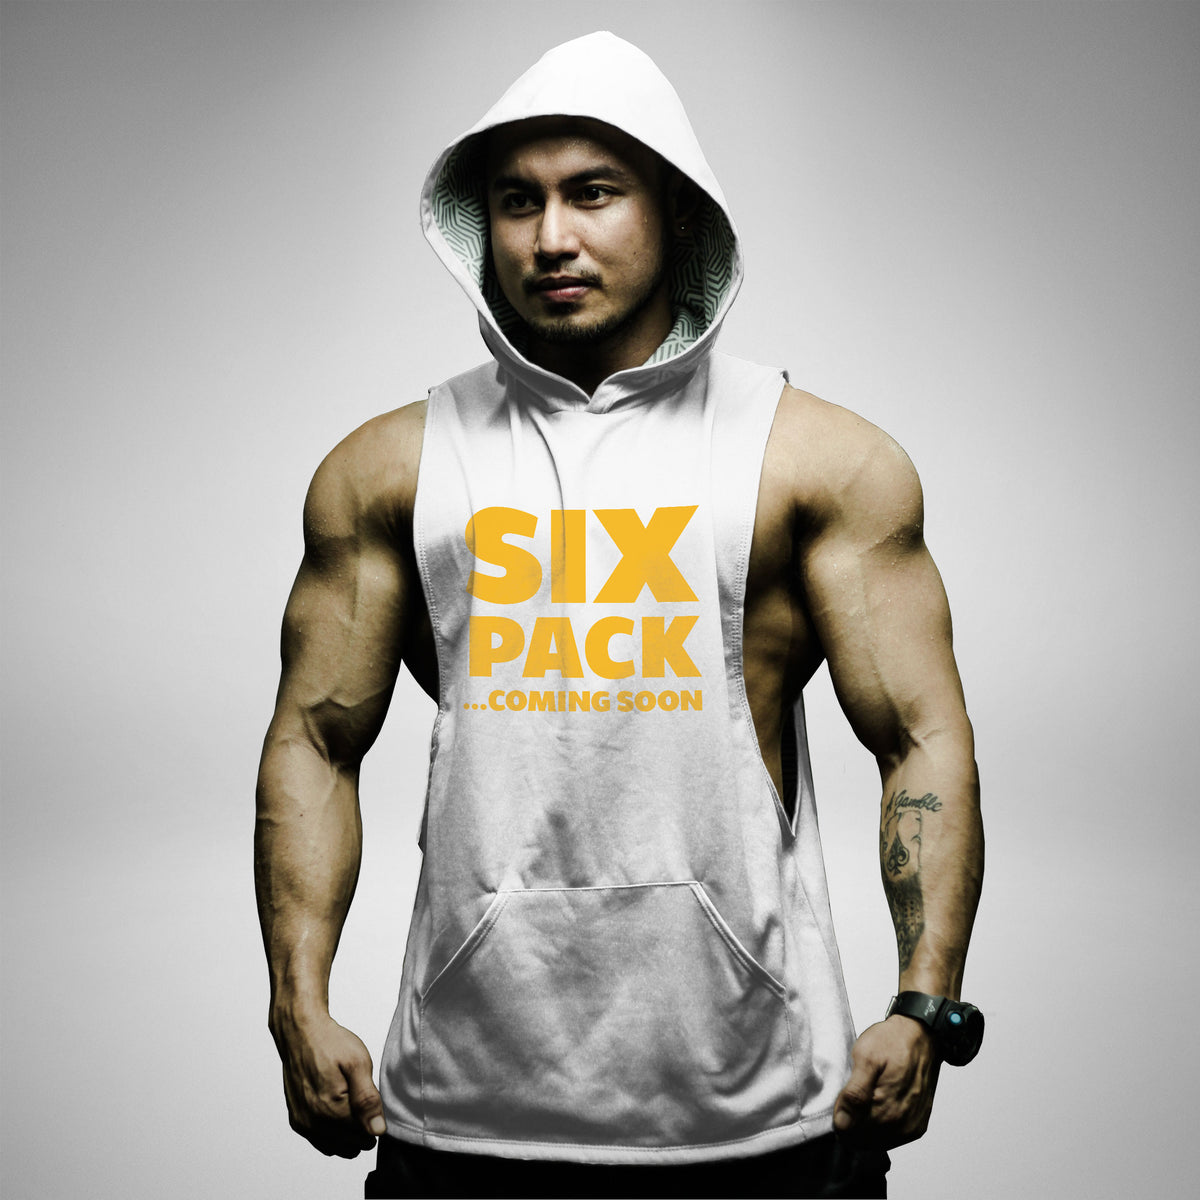 AH128 Six Pack Coming Soon Sleeveless Hoodie